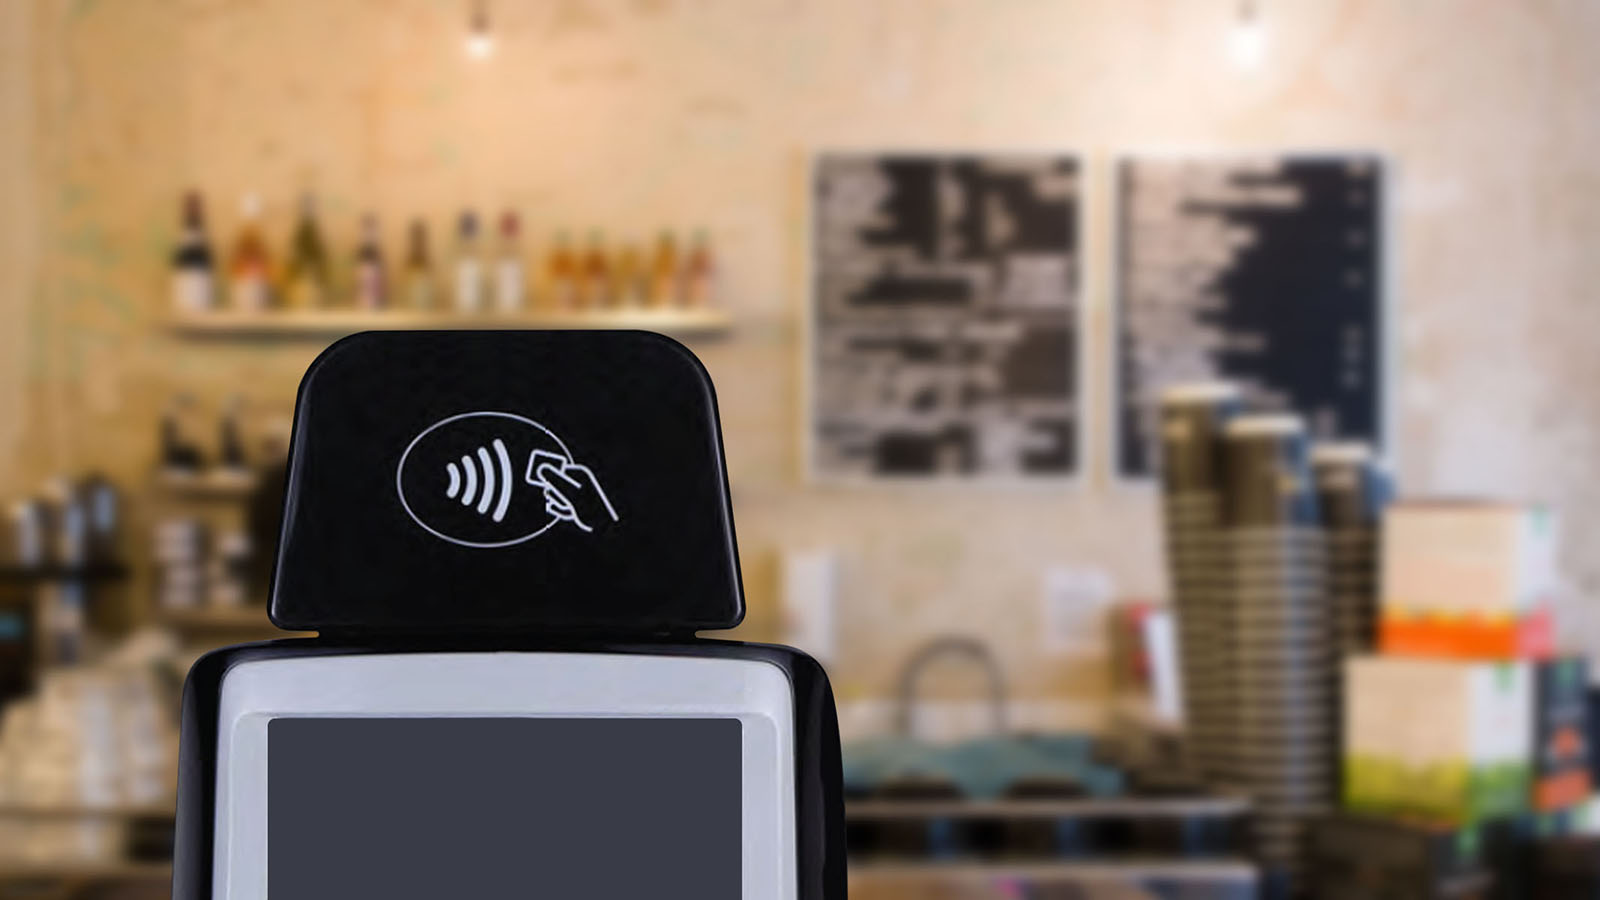 NFC terminal displaying contactless logo in a coffee shop.